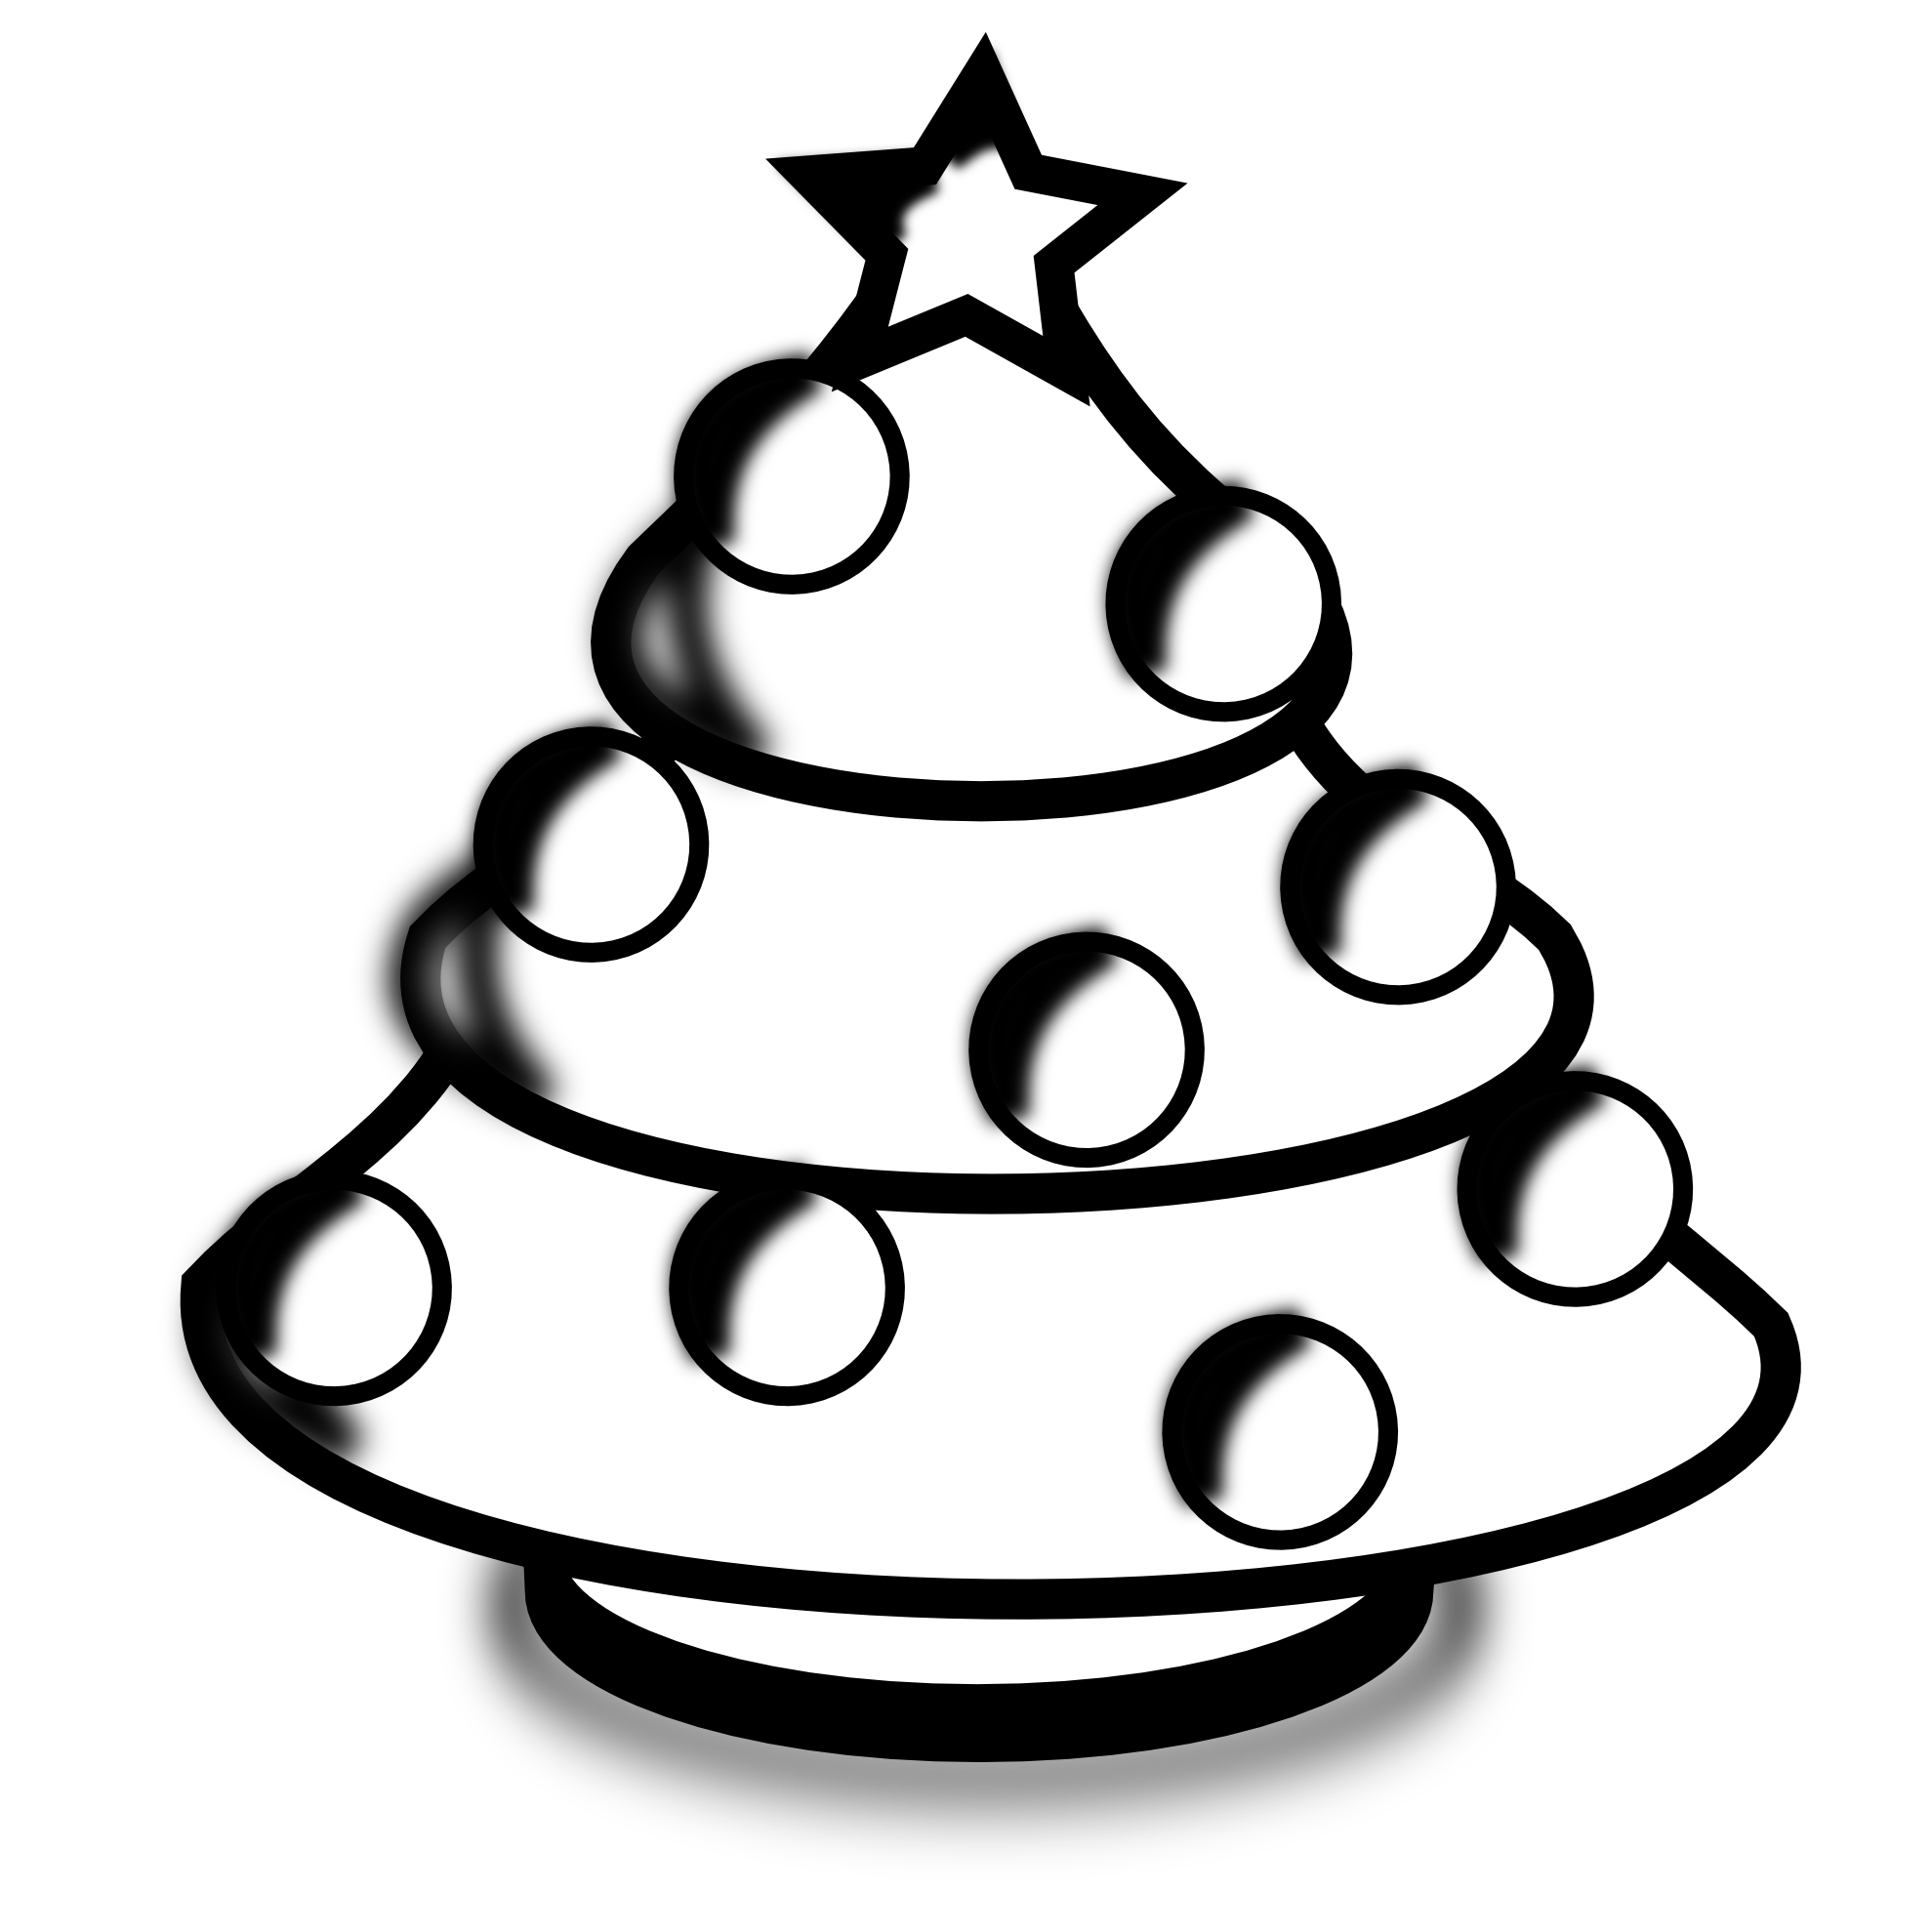 Christmas toys clipart black and white banner freeuse download Christmas black and white black and white christmas clip art free 2 ... banner freeuse download